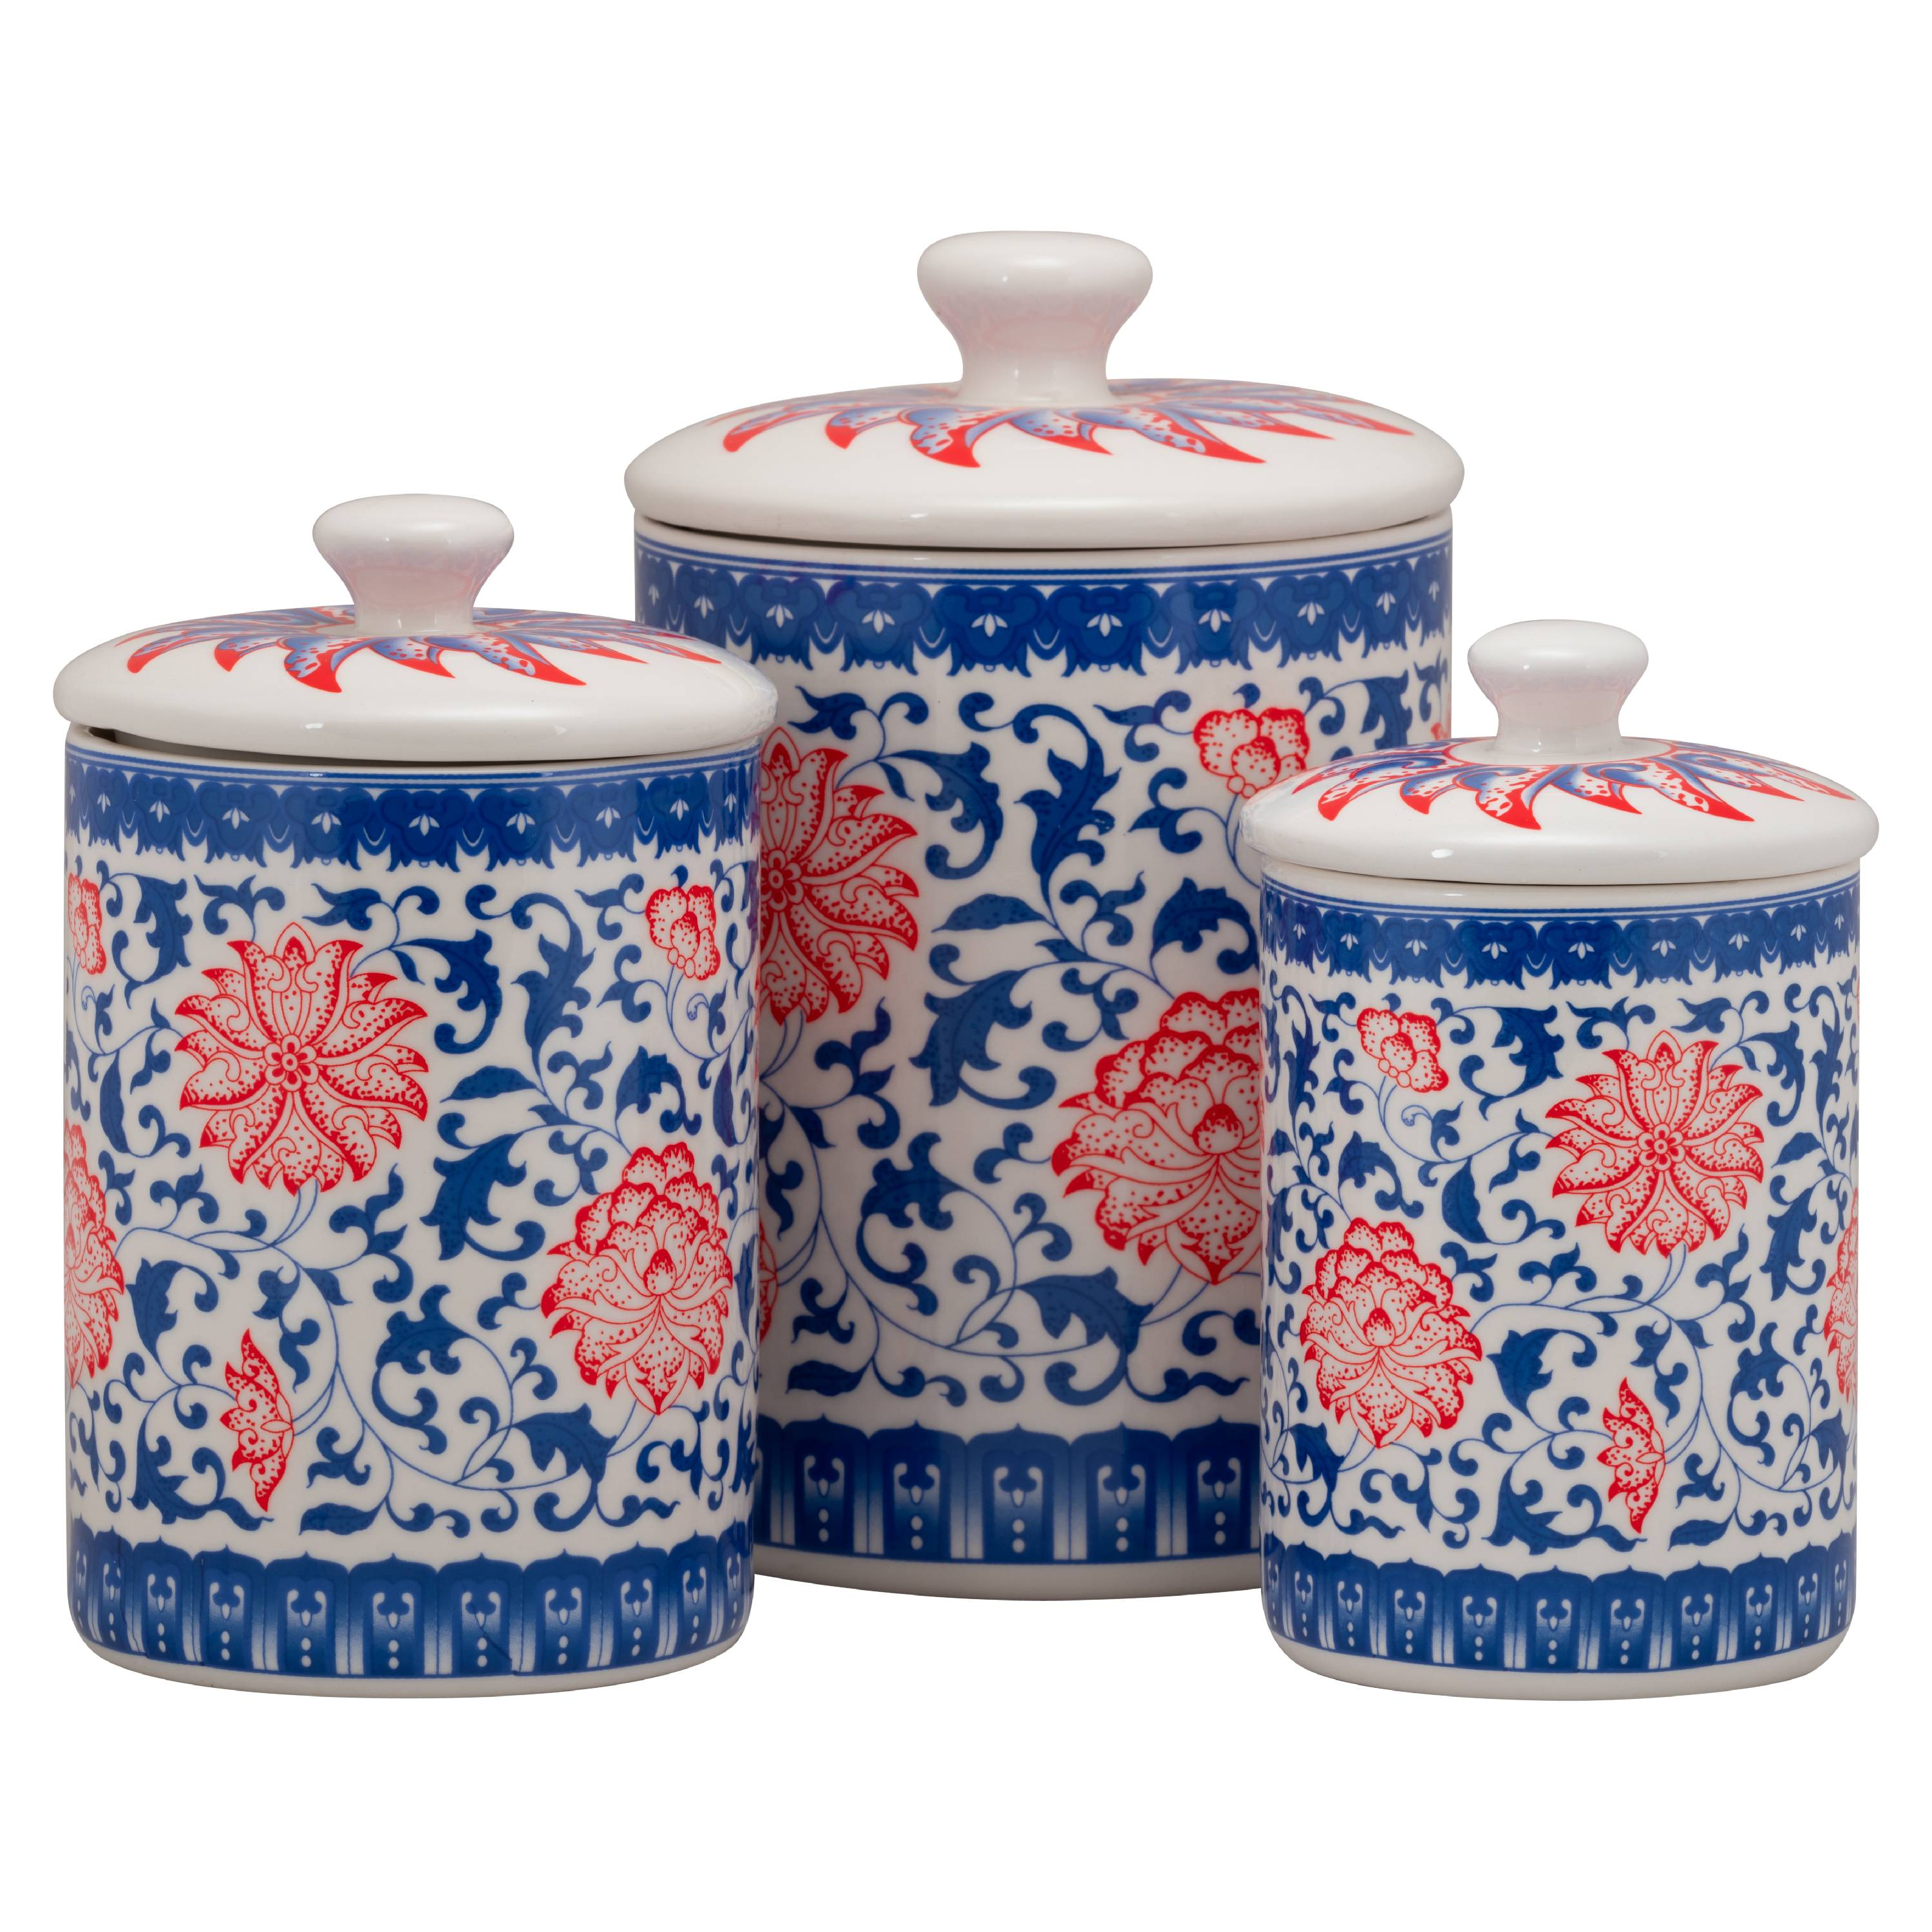 10 Strawberry Street Chinoiserie 3 Piece Porcelain Canister Set, Red Blue by 10 Strawberry Street